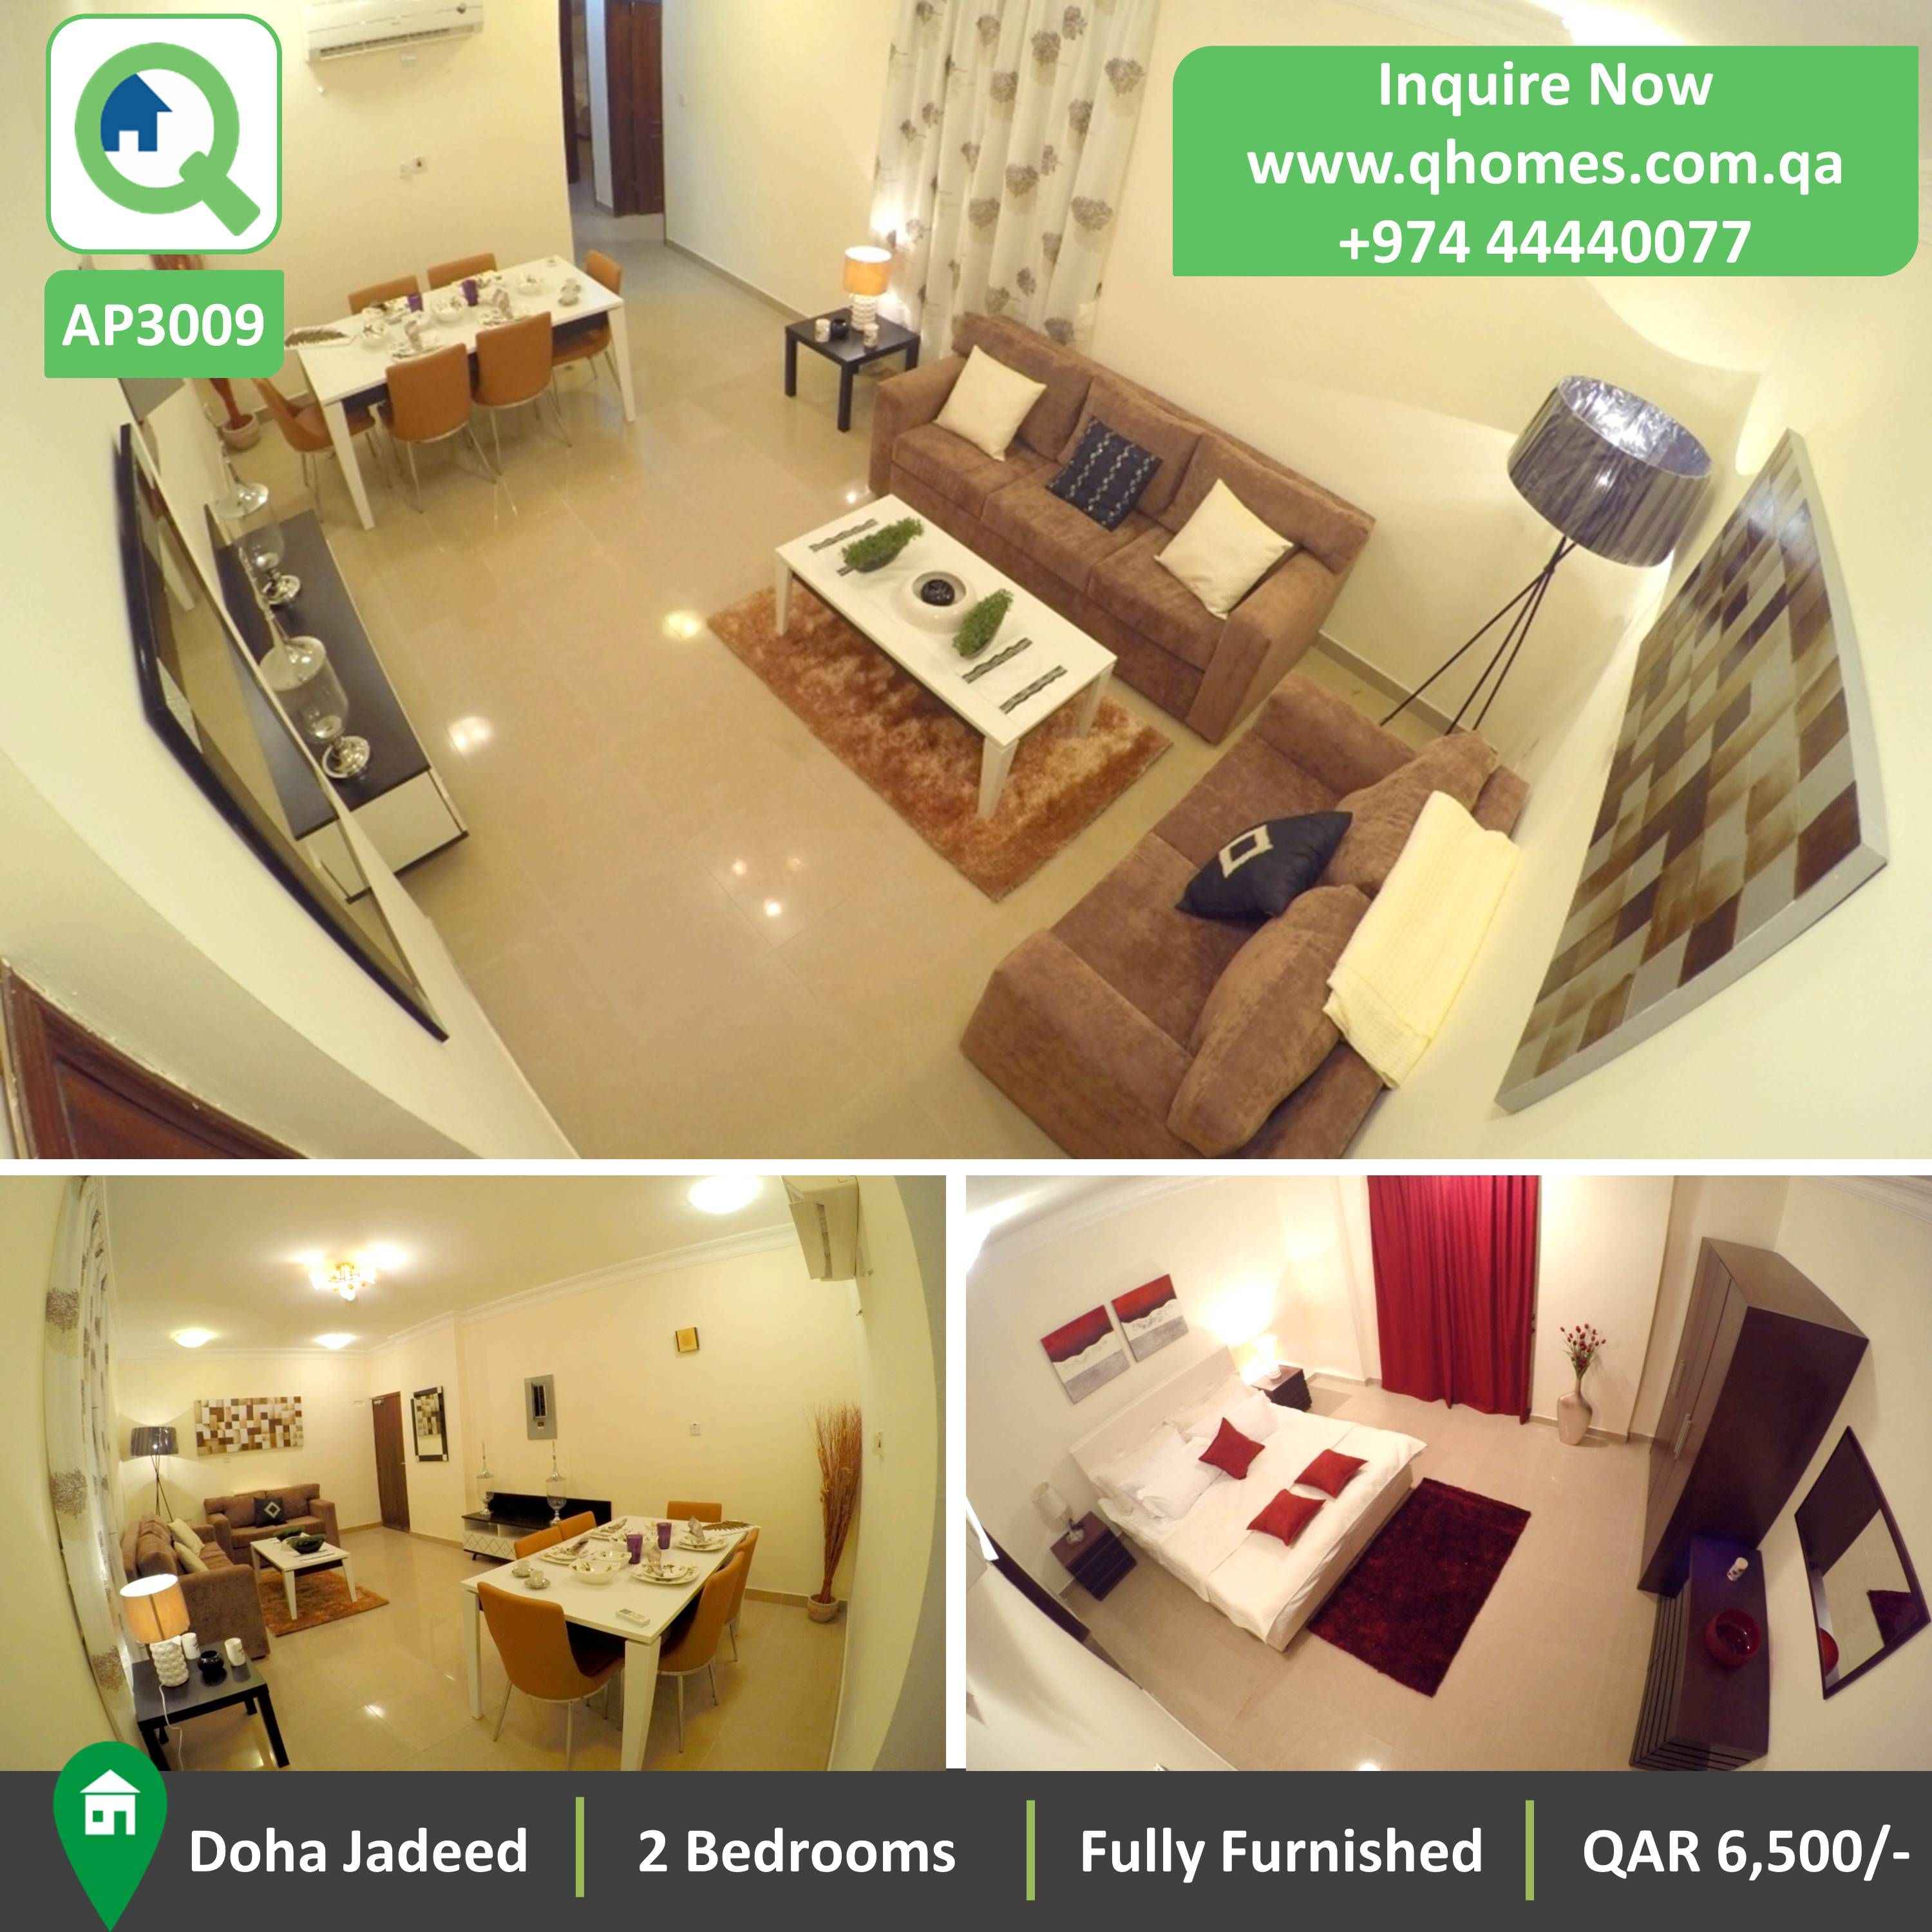 Apartment For Rent In Doha Jadeed Fully Furnished 2 Bedrooms Apartment For Rent In Doha Jadeed At 1 Bedroom Apartment Apartments For Rent Finding Apartments